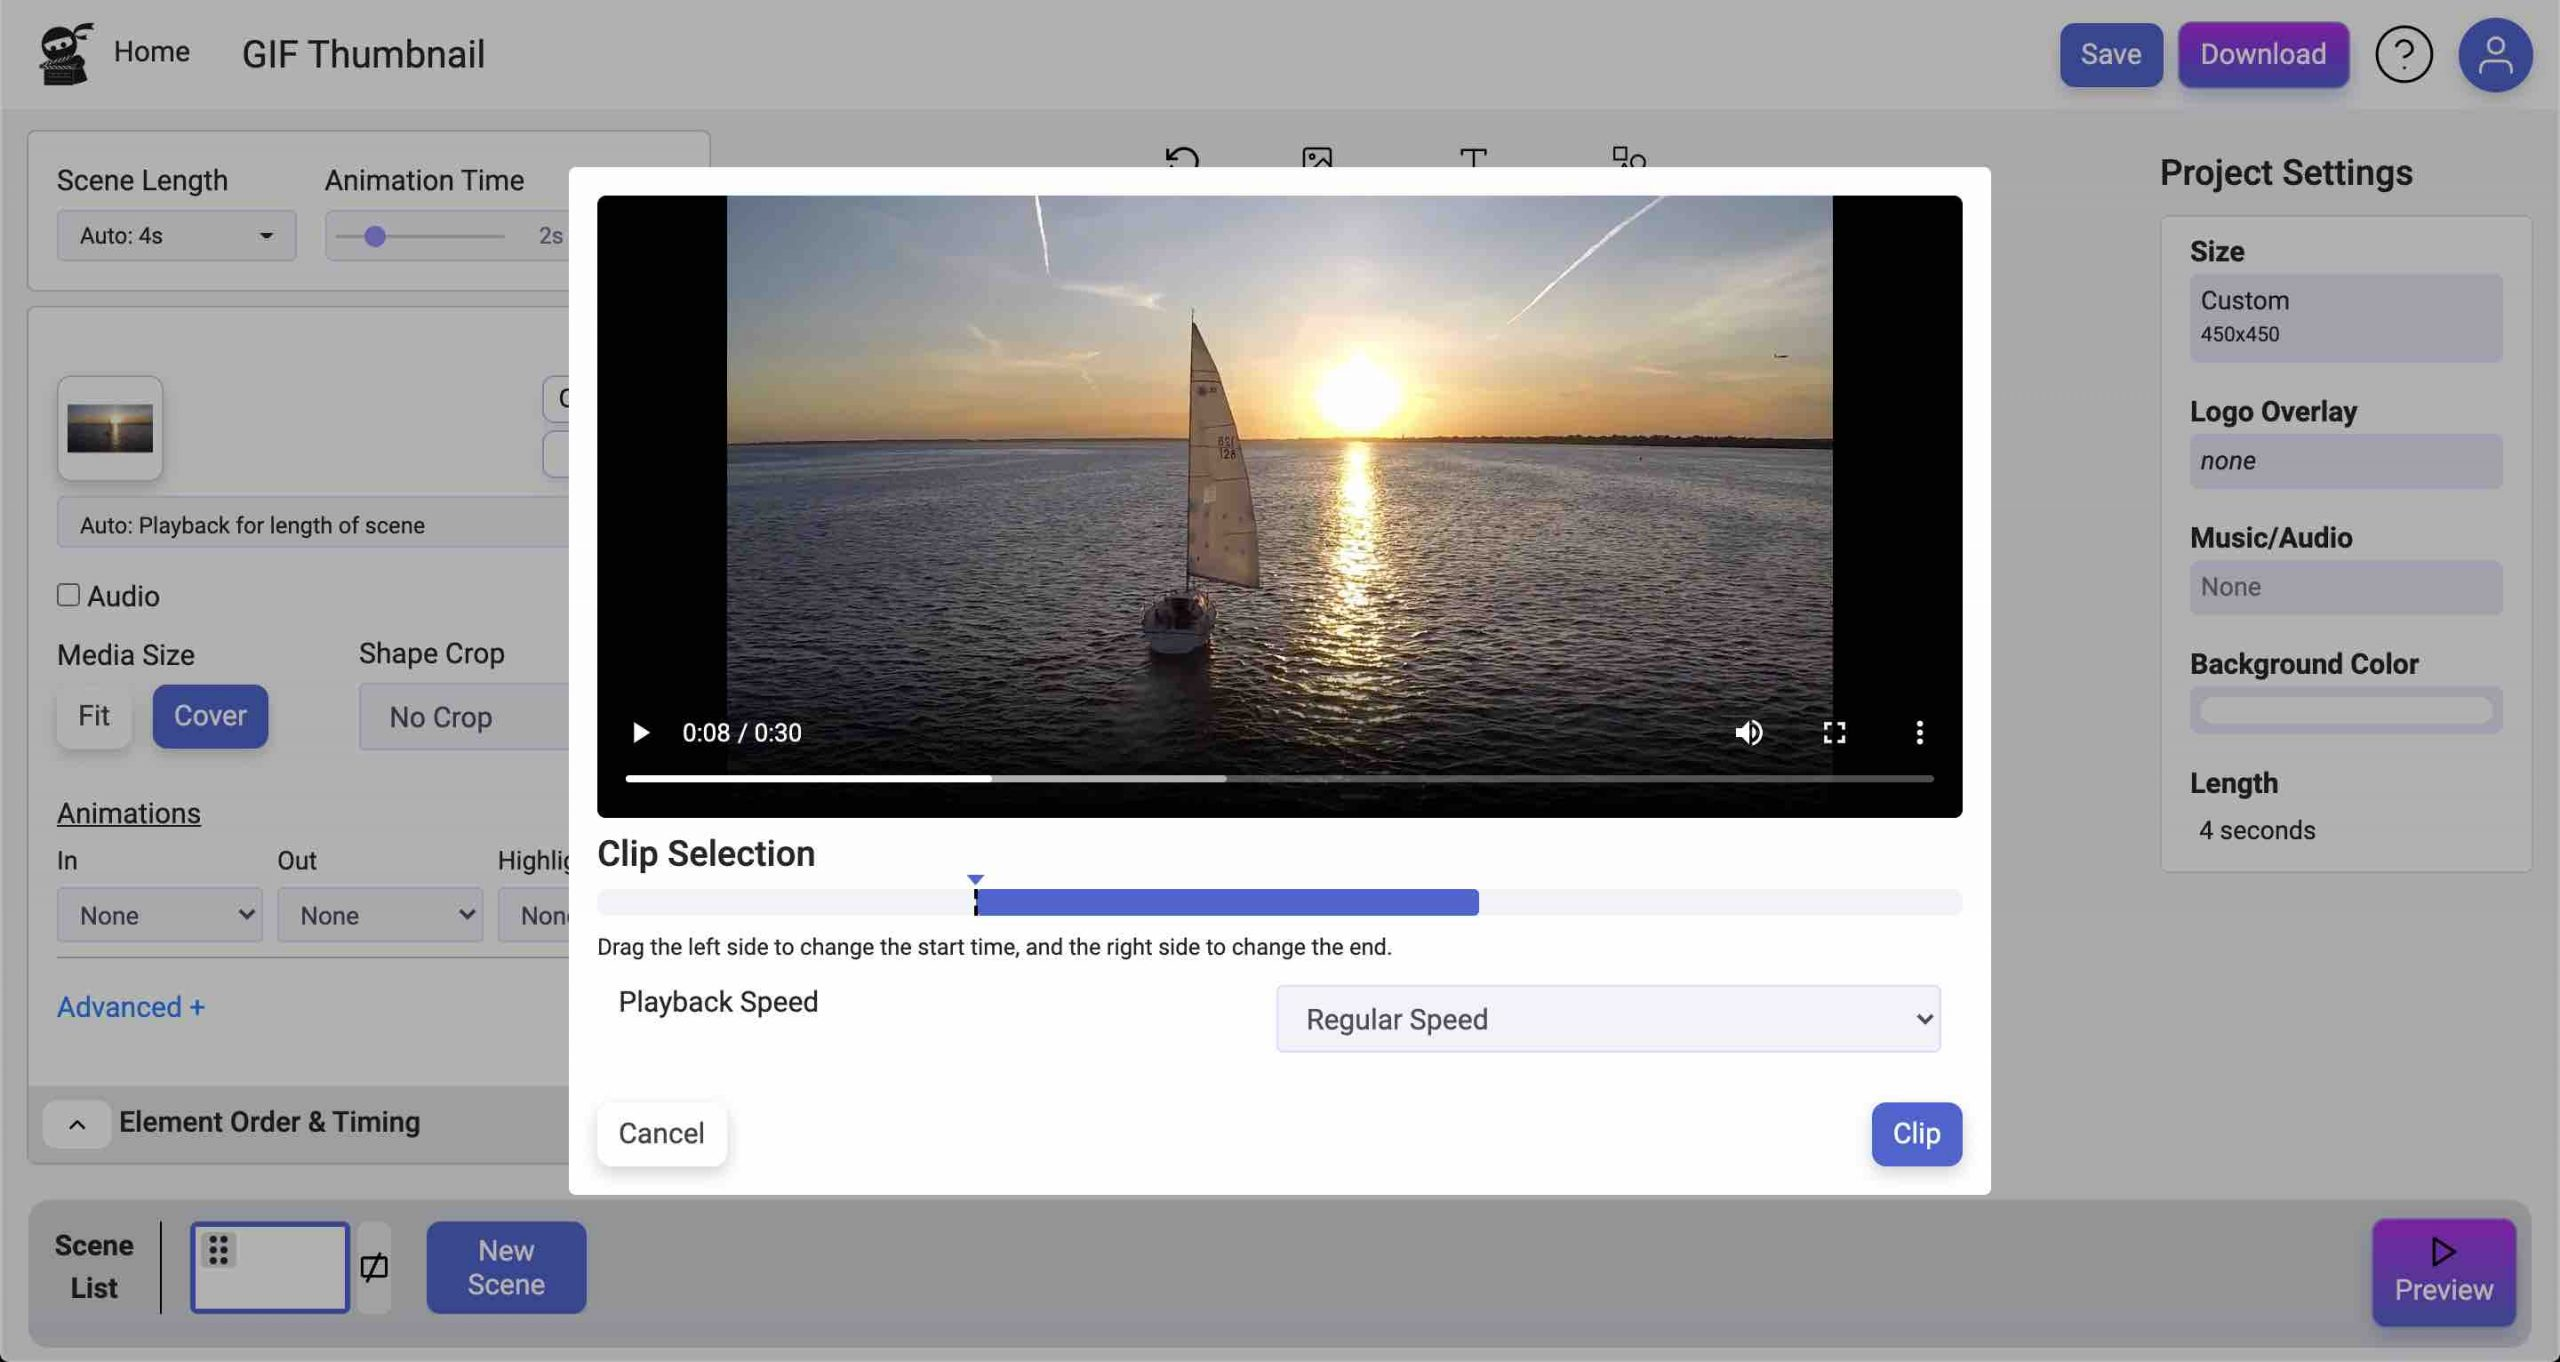 How to create an animated GIF thumbnail - trim video clip